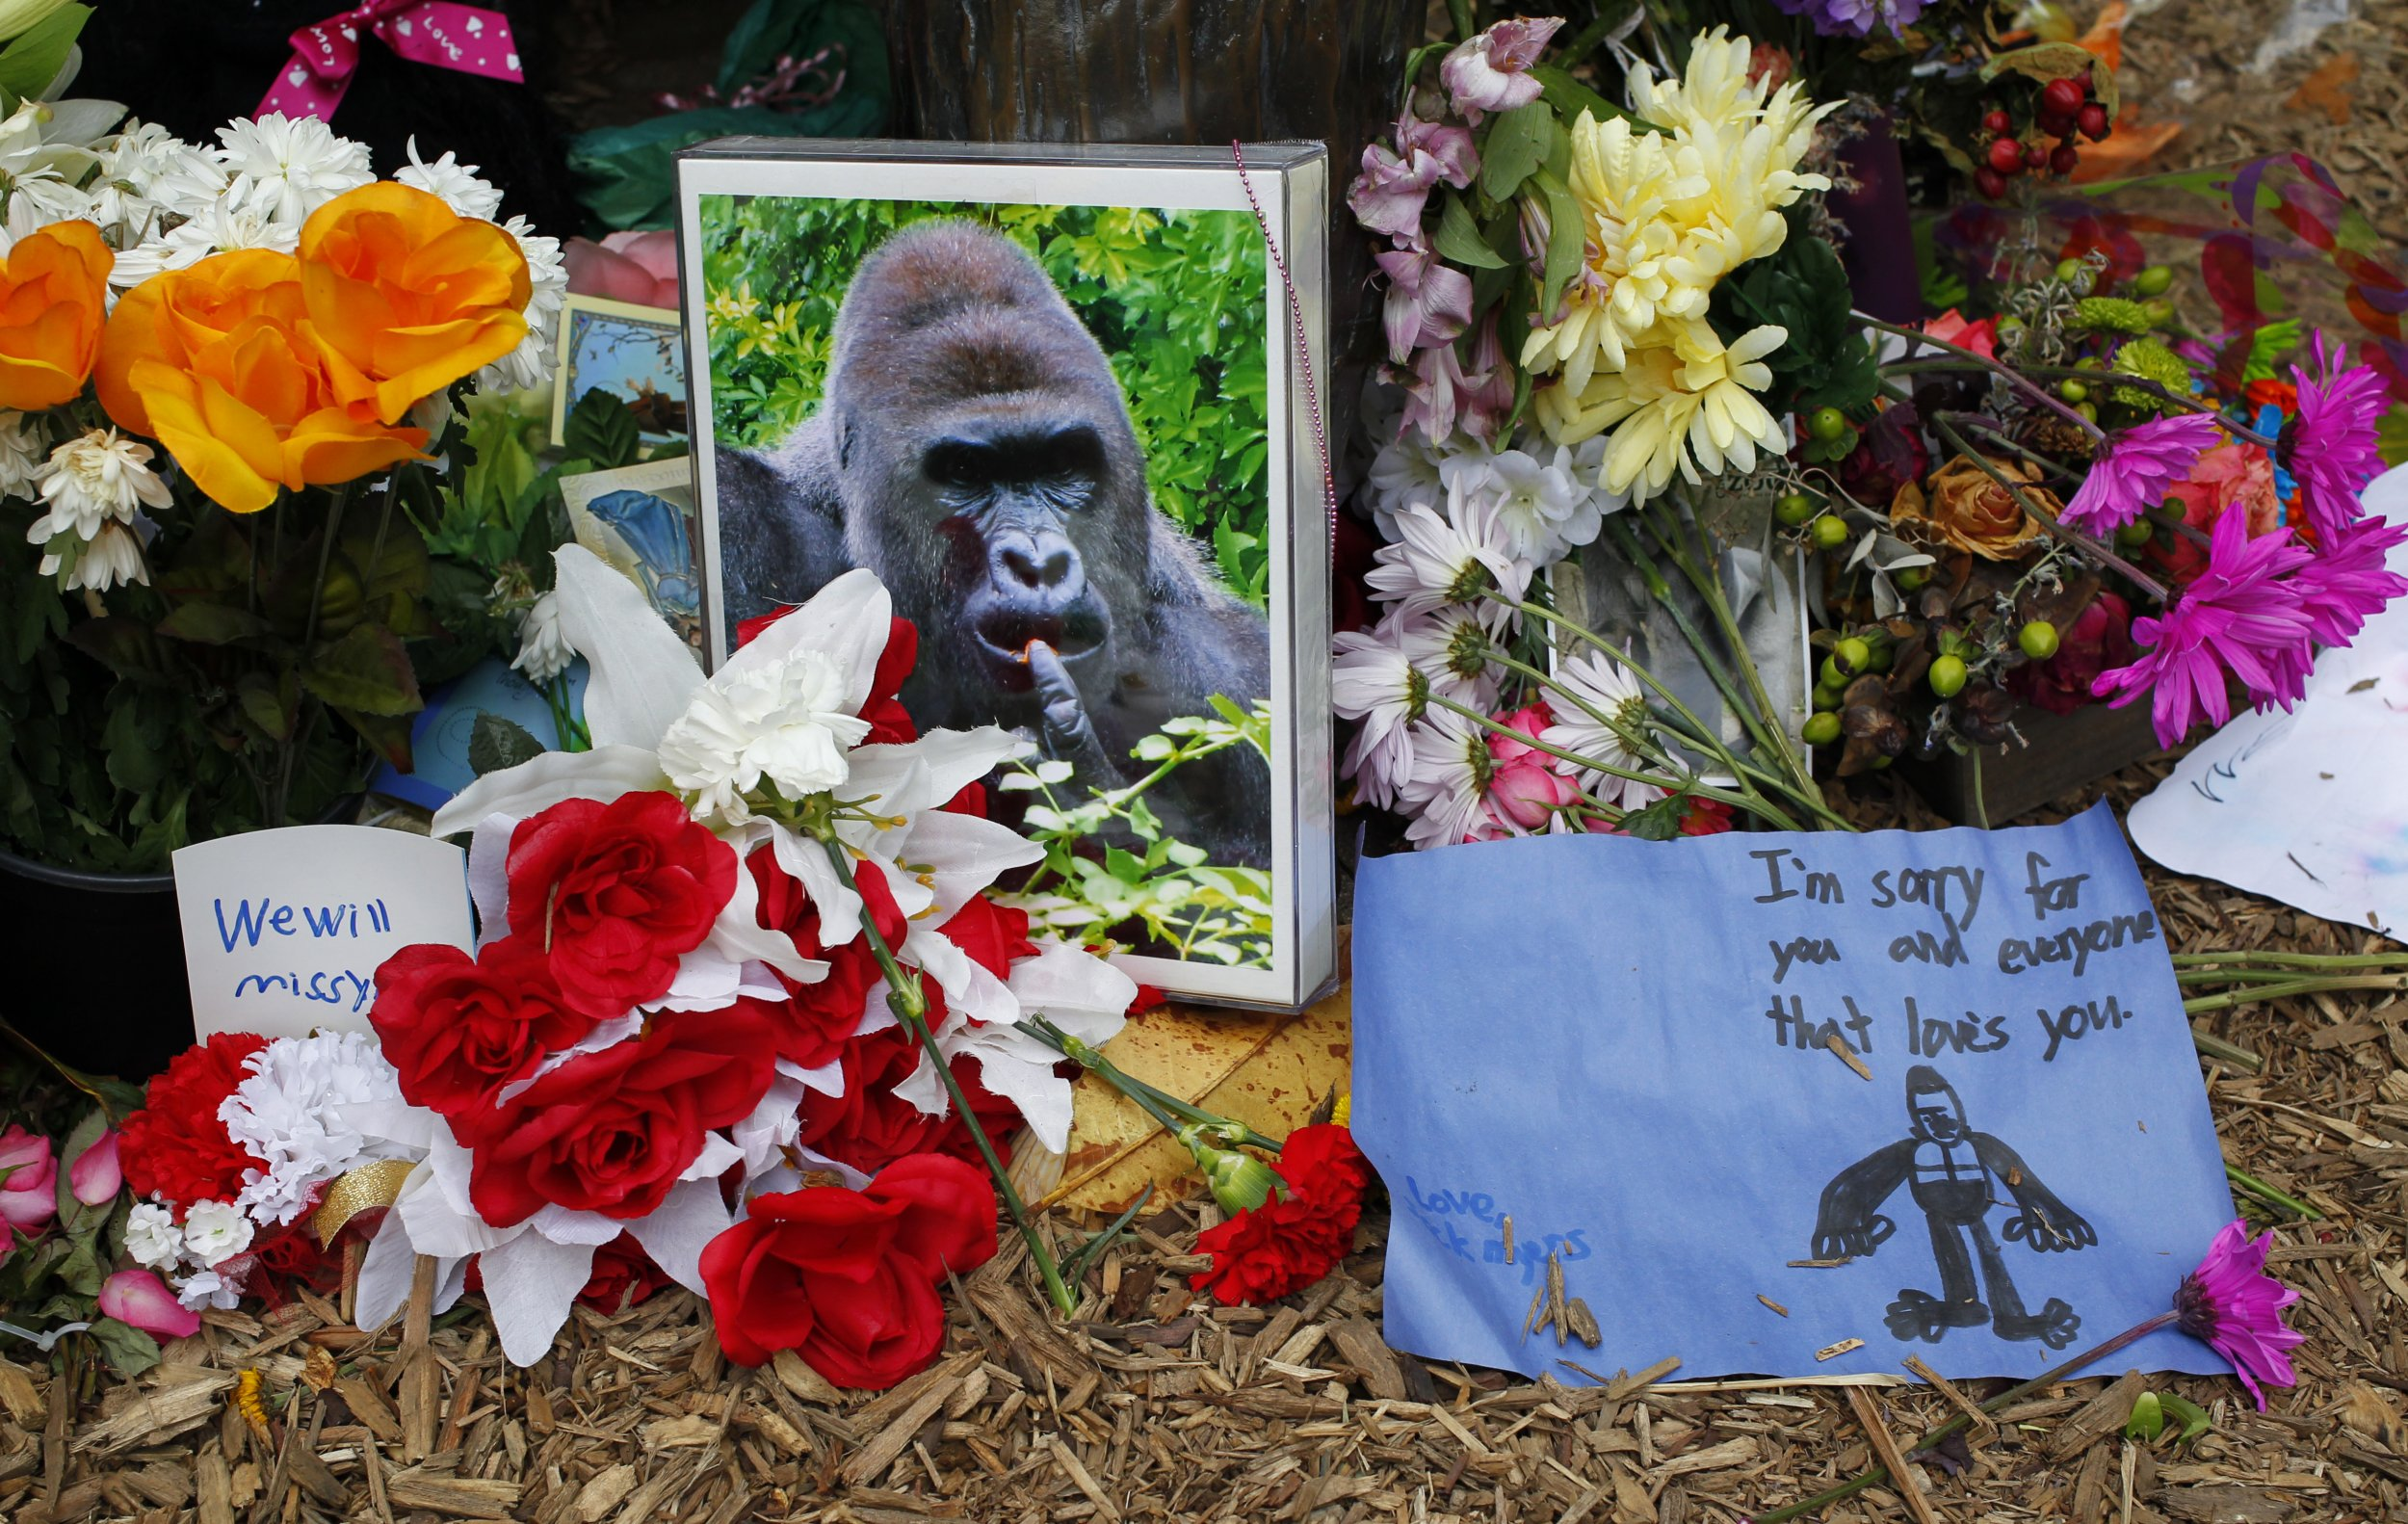 Tributes to Harambe the gorilla.